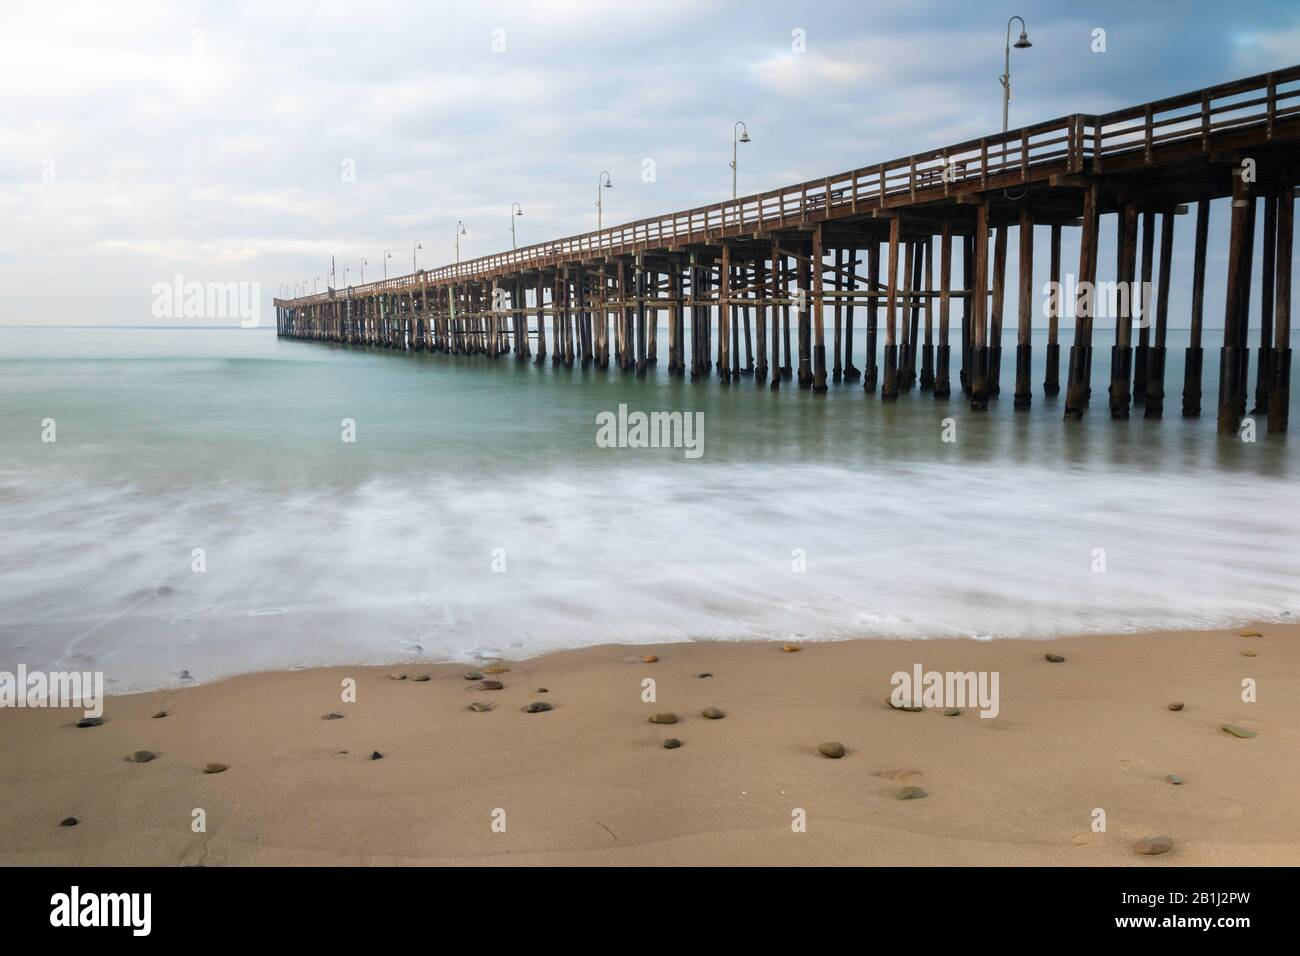 Pier at Ventura, California; view from beach, extending into the water. Green ocean, cloudy sky. Stock Photo